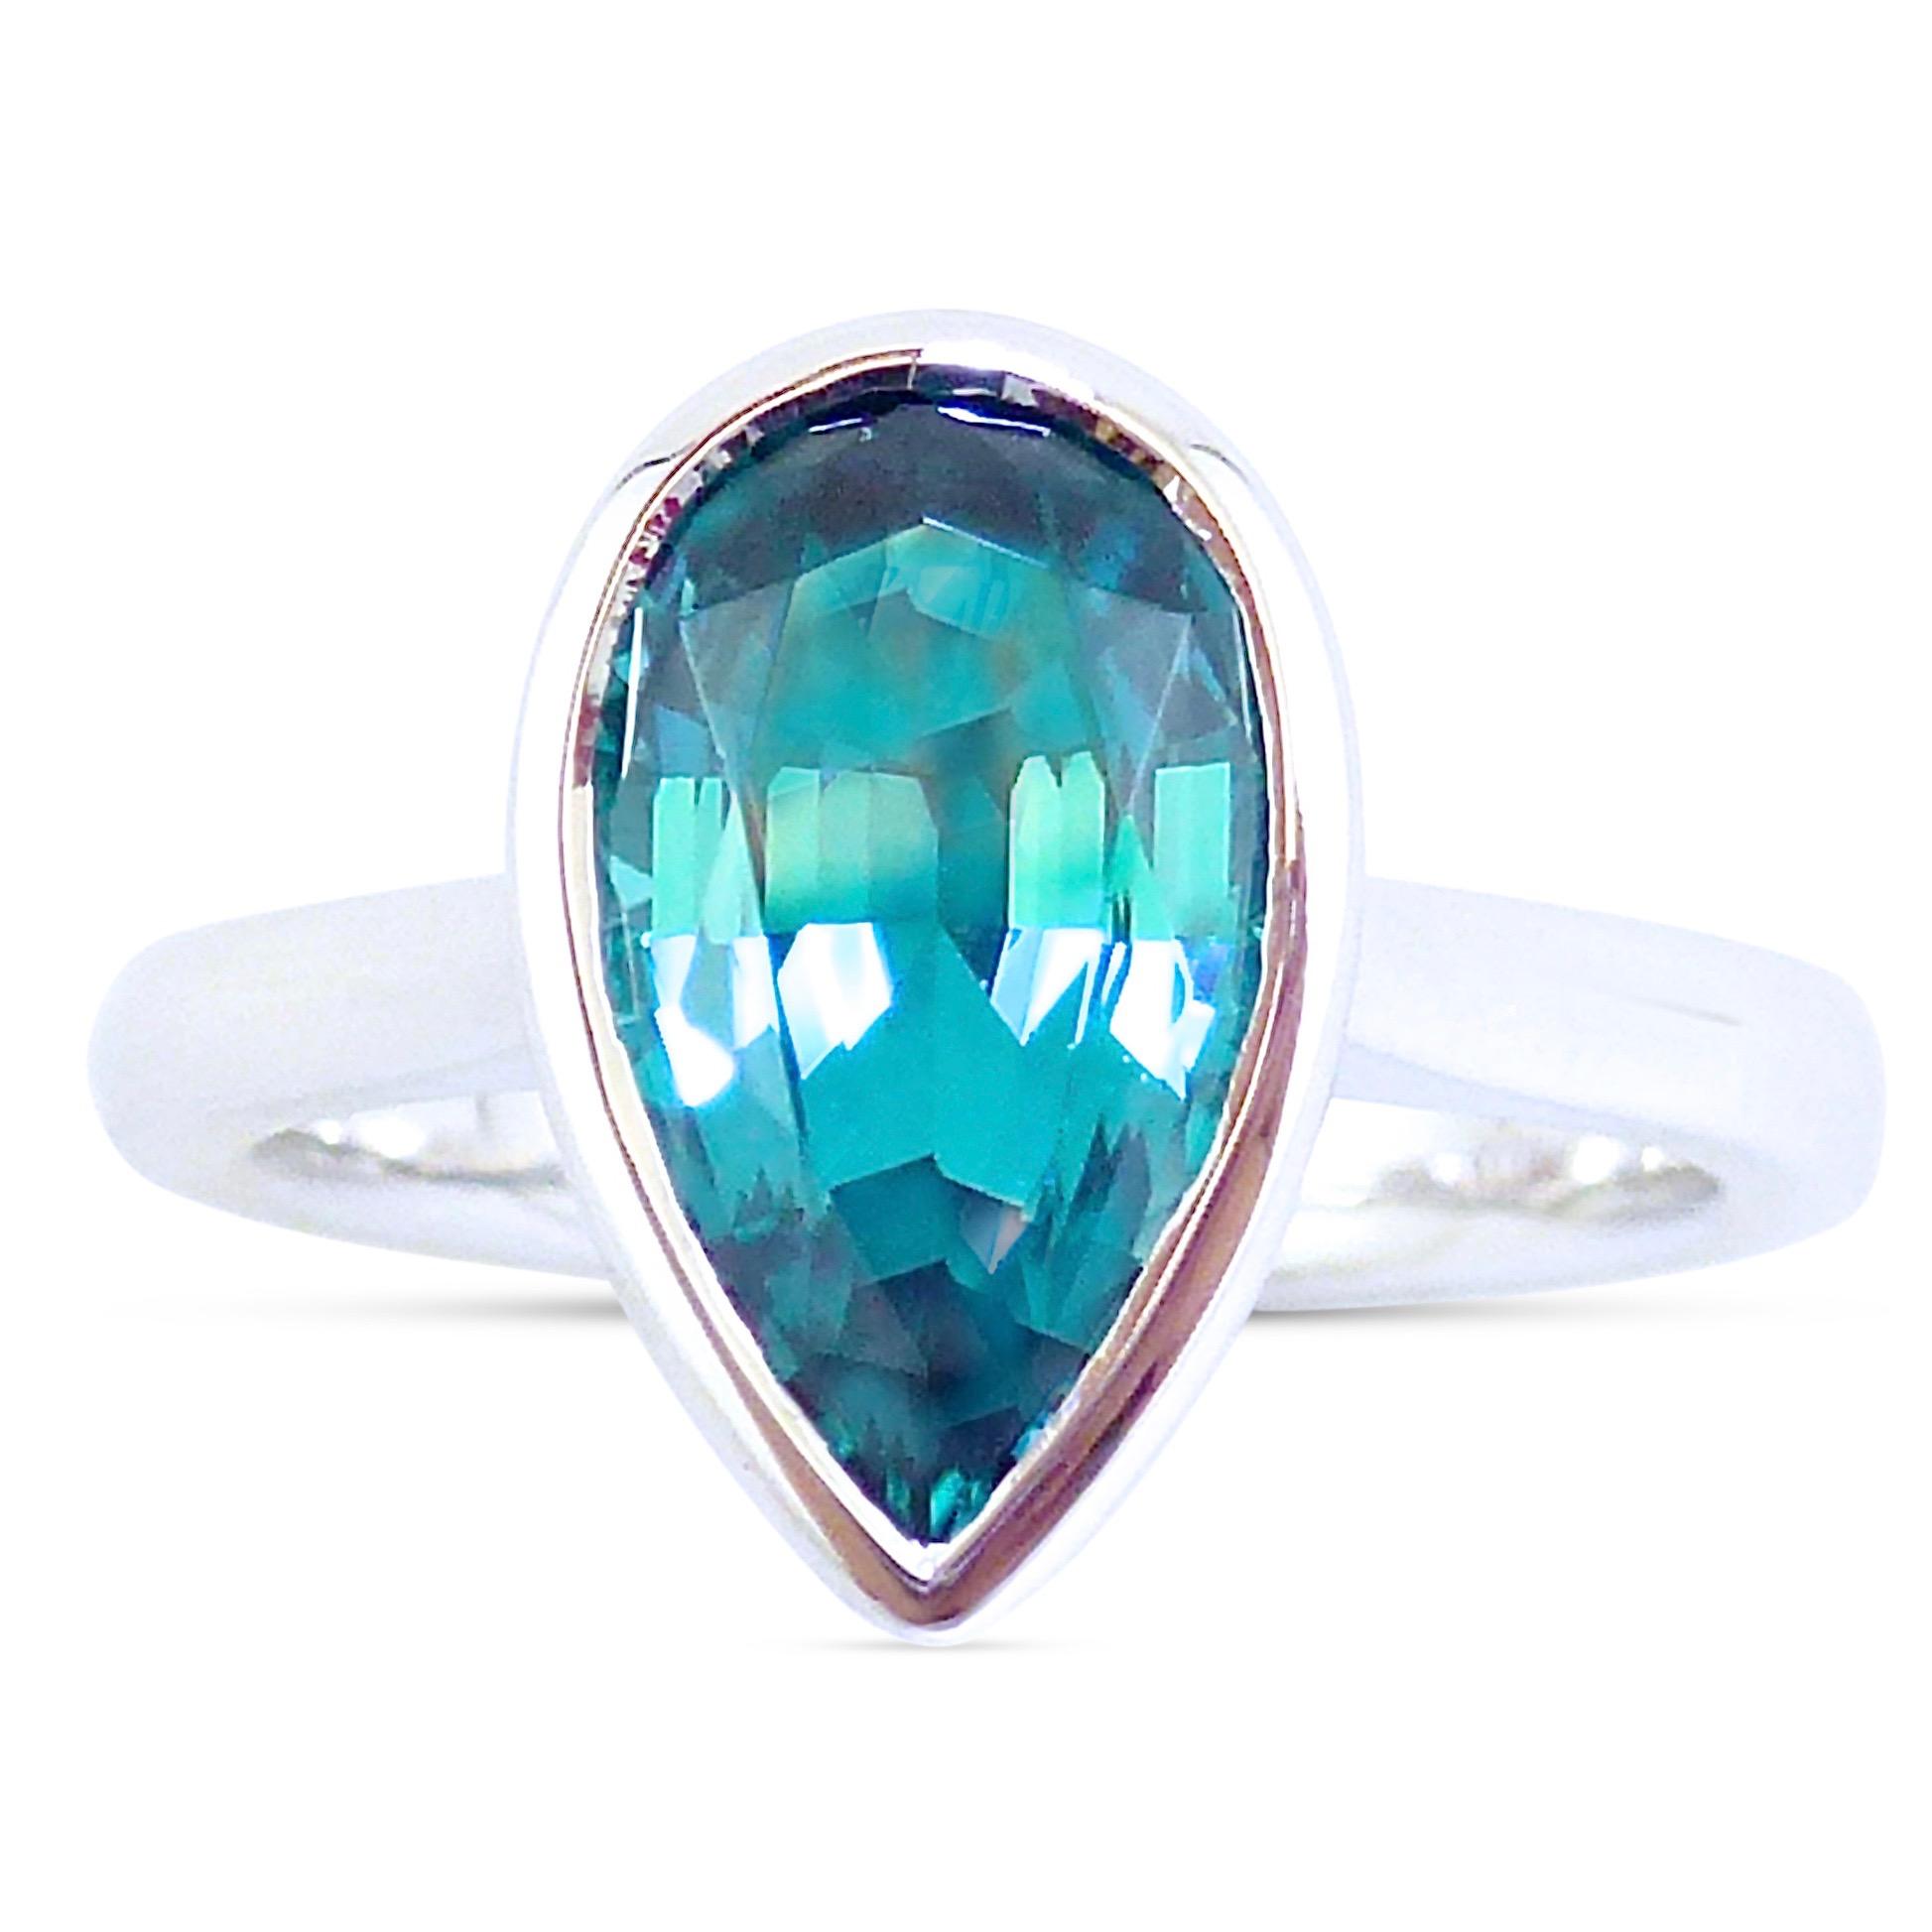 Teal tourmaline bezel set engagement ring